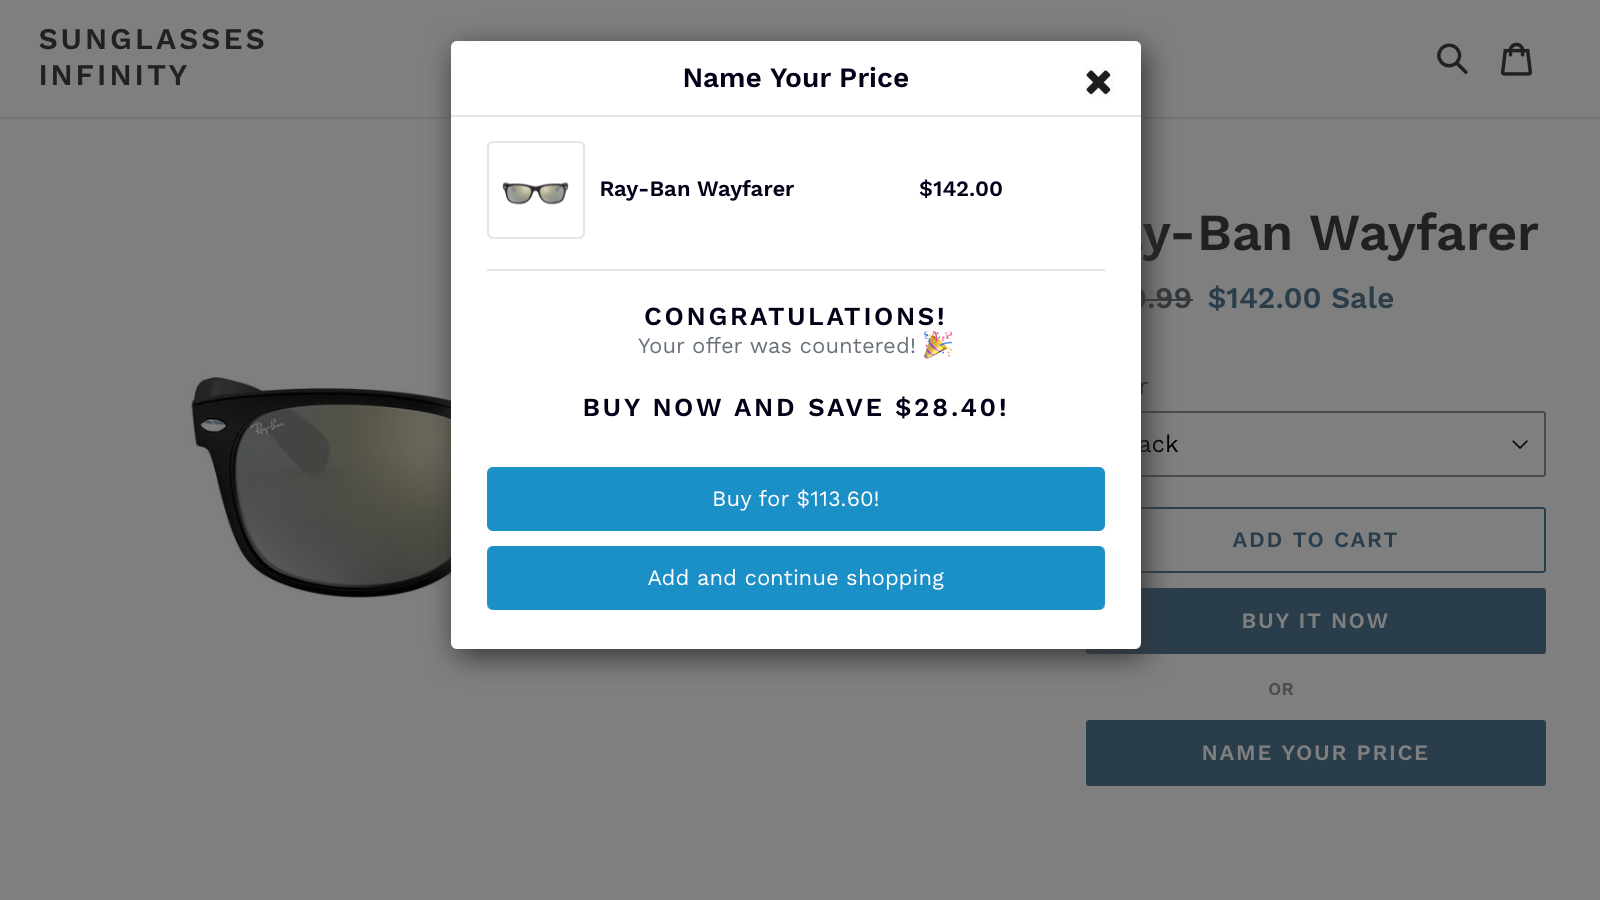 A lower offer will be countered up to your acceptable price